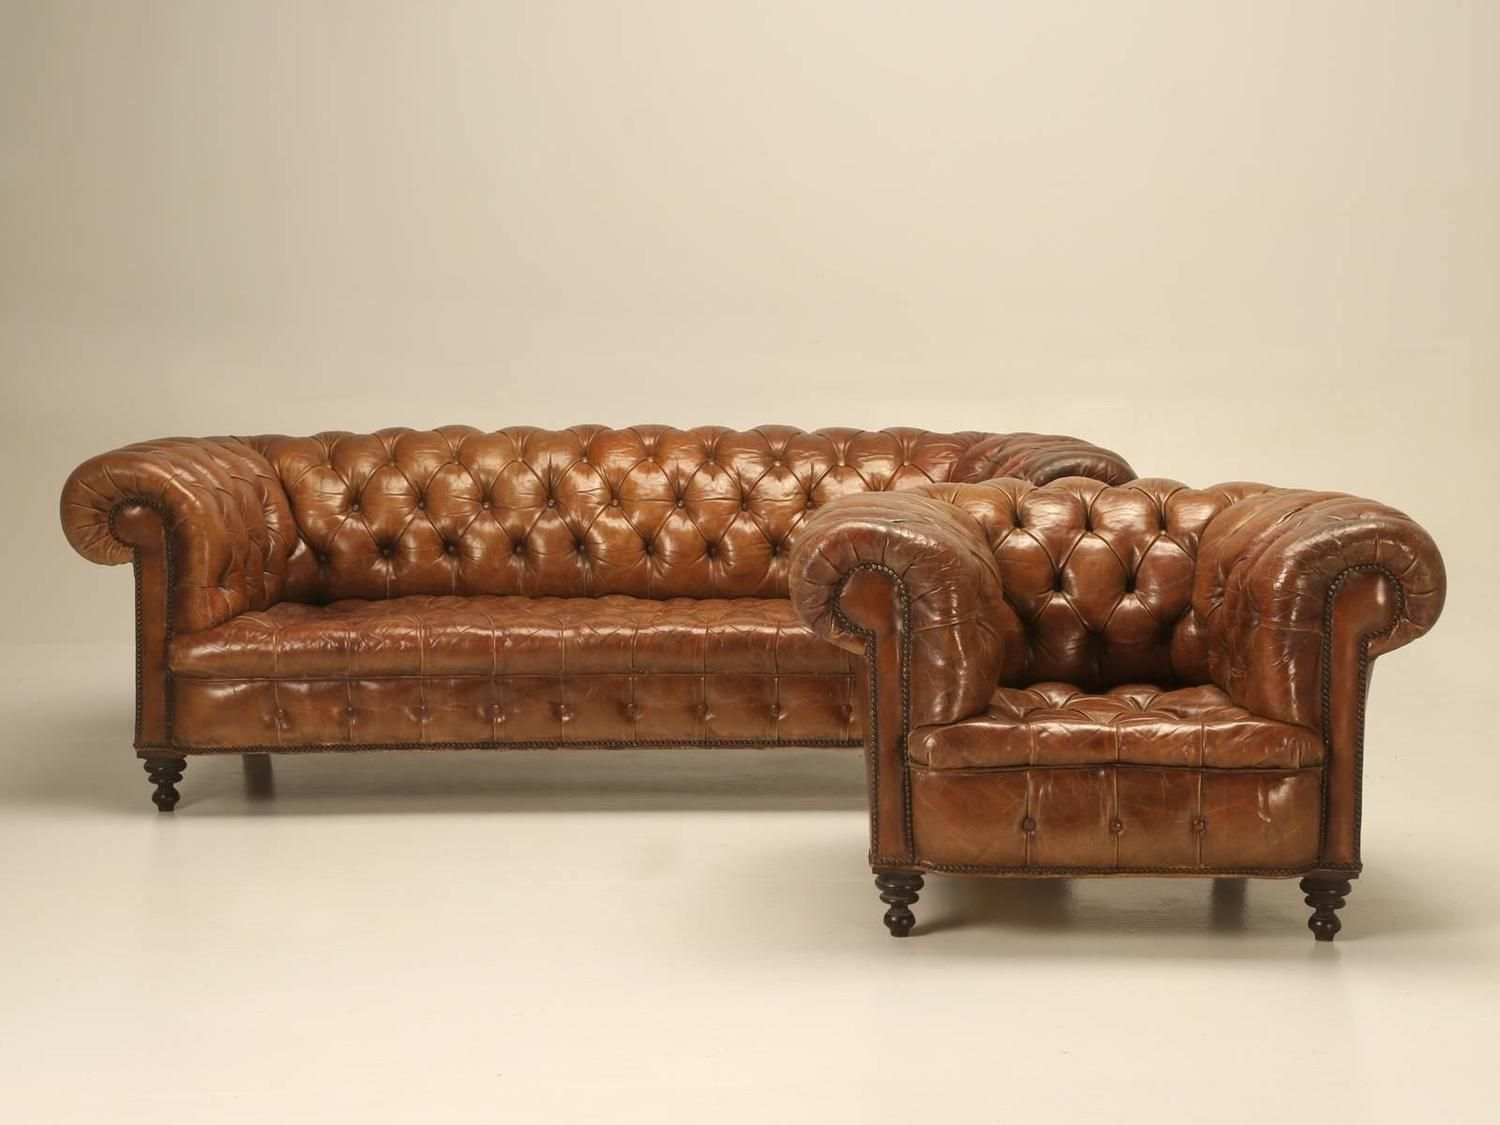 Chesterfield Suites Antique Leather Chesterfield Sofa In Original Leather Furniture